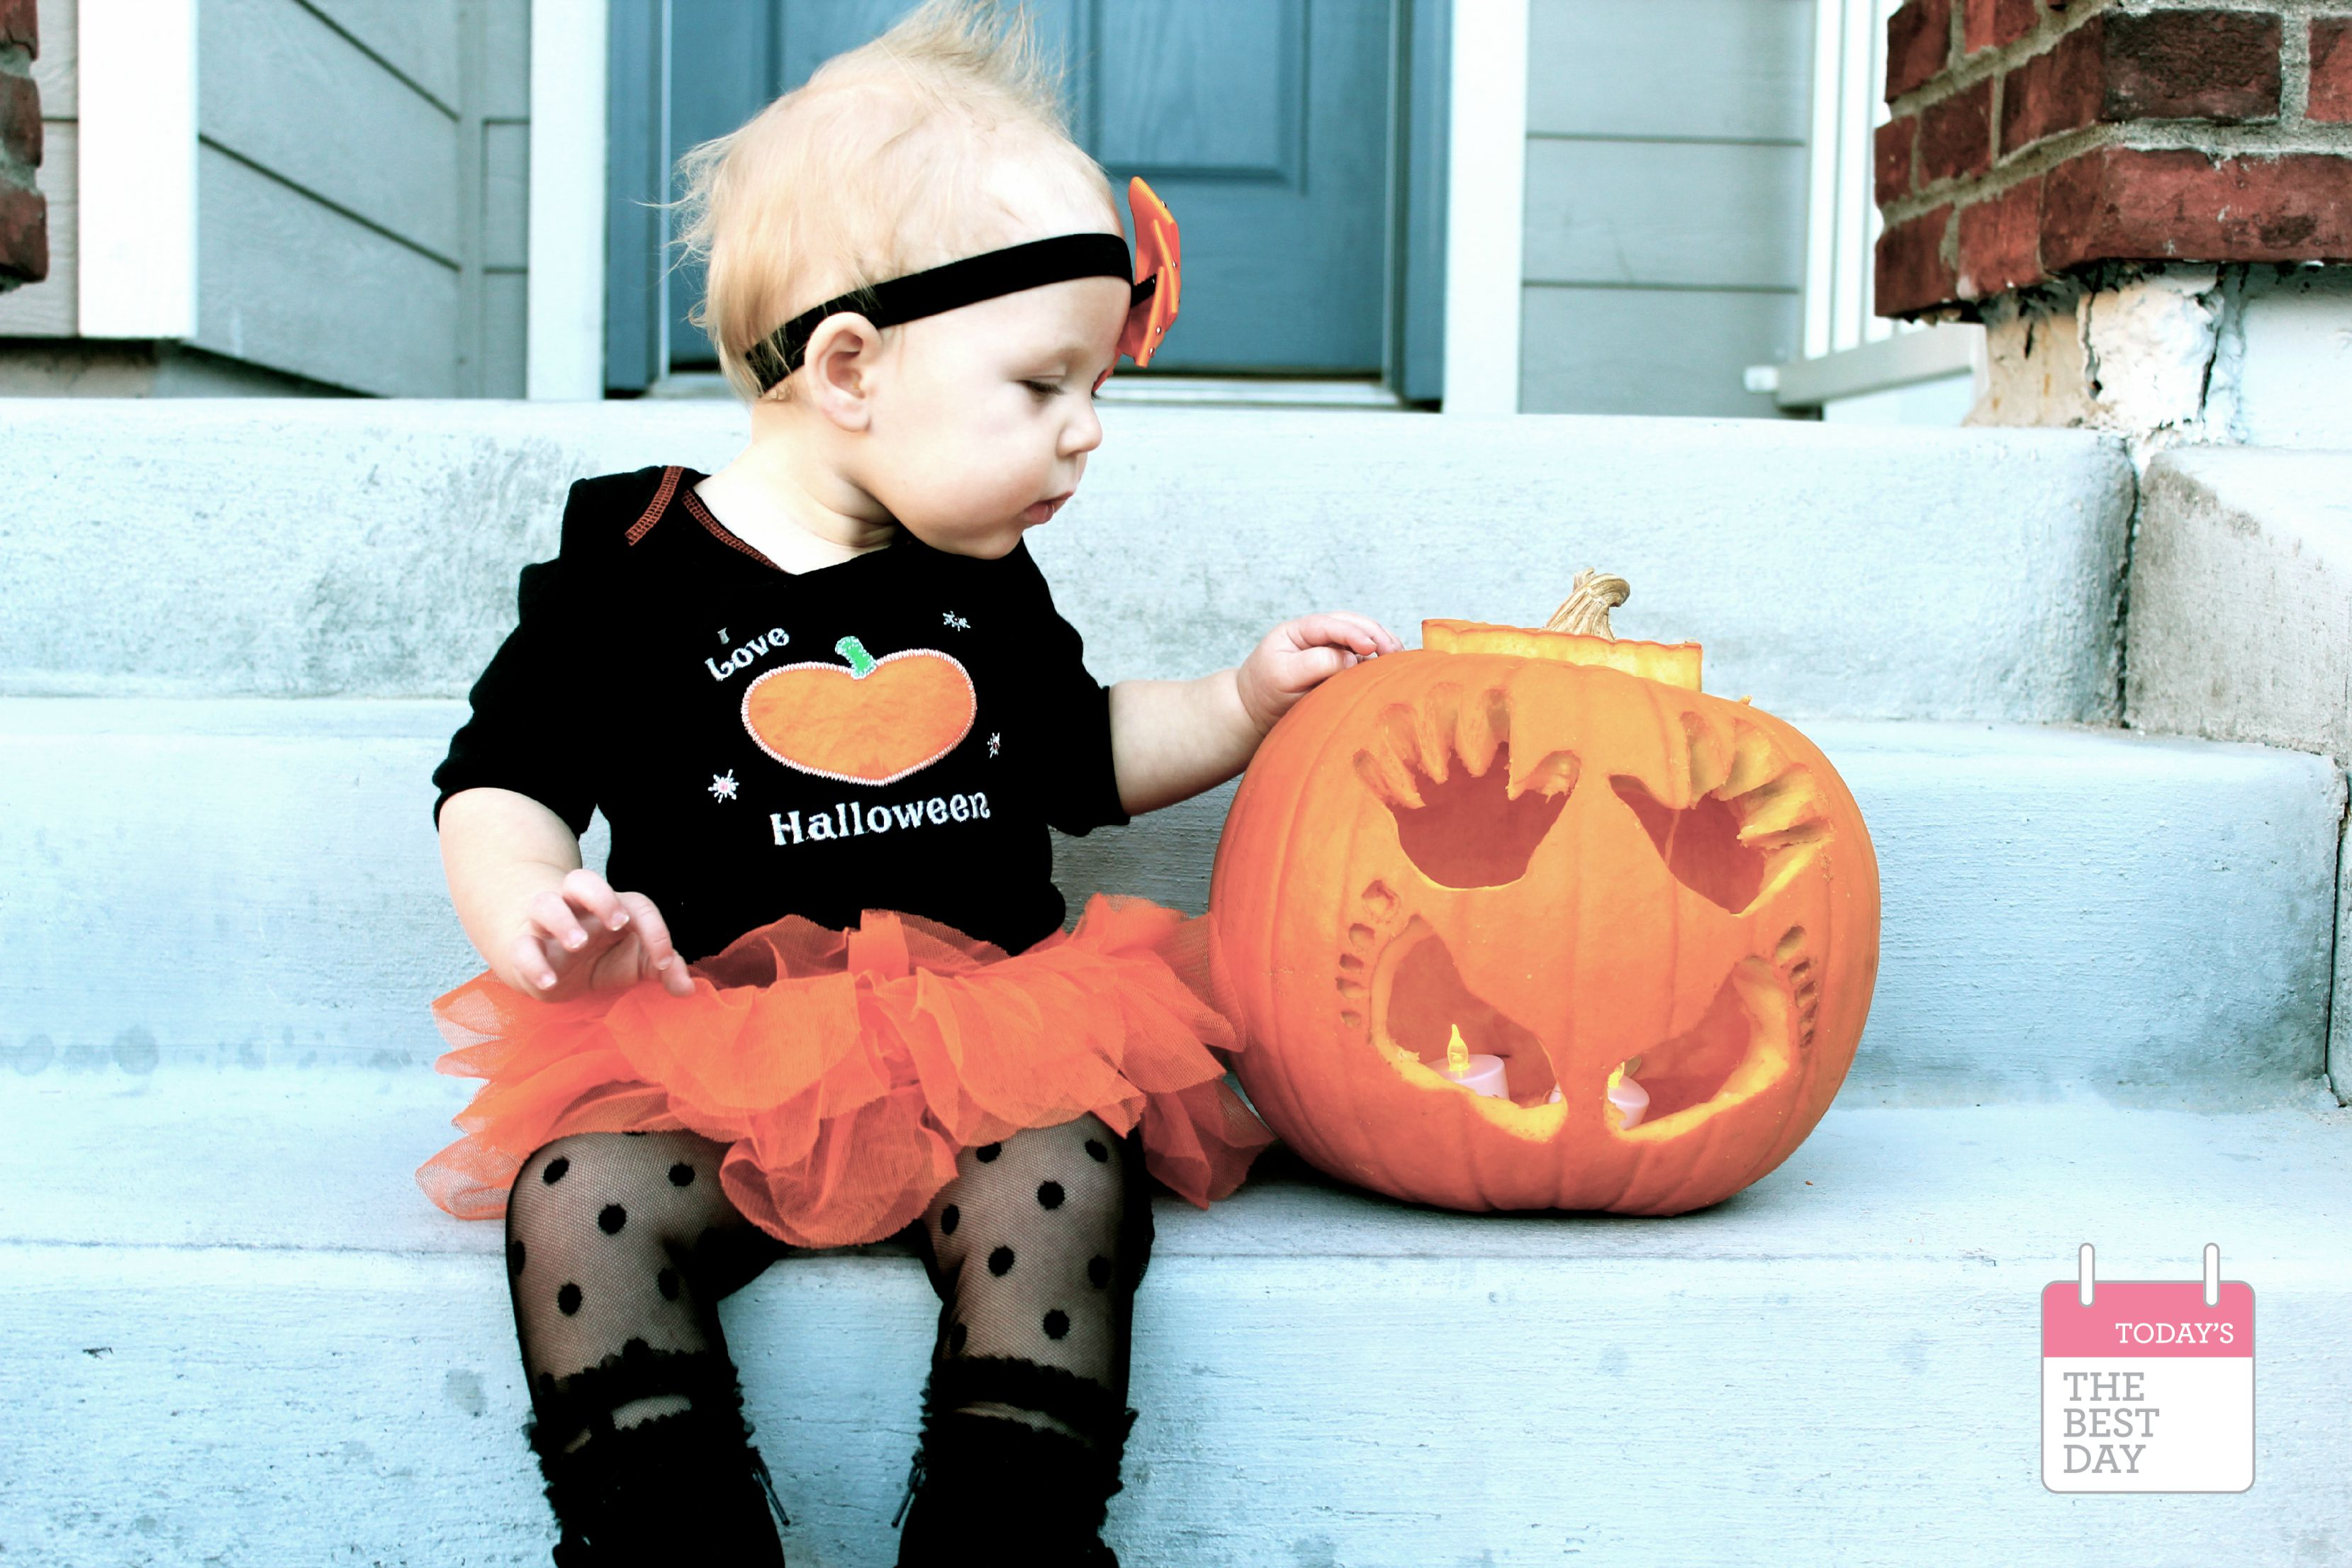 baby's first halloween jack-o-lantern 3 - today's the best day